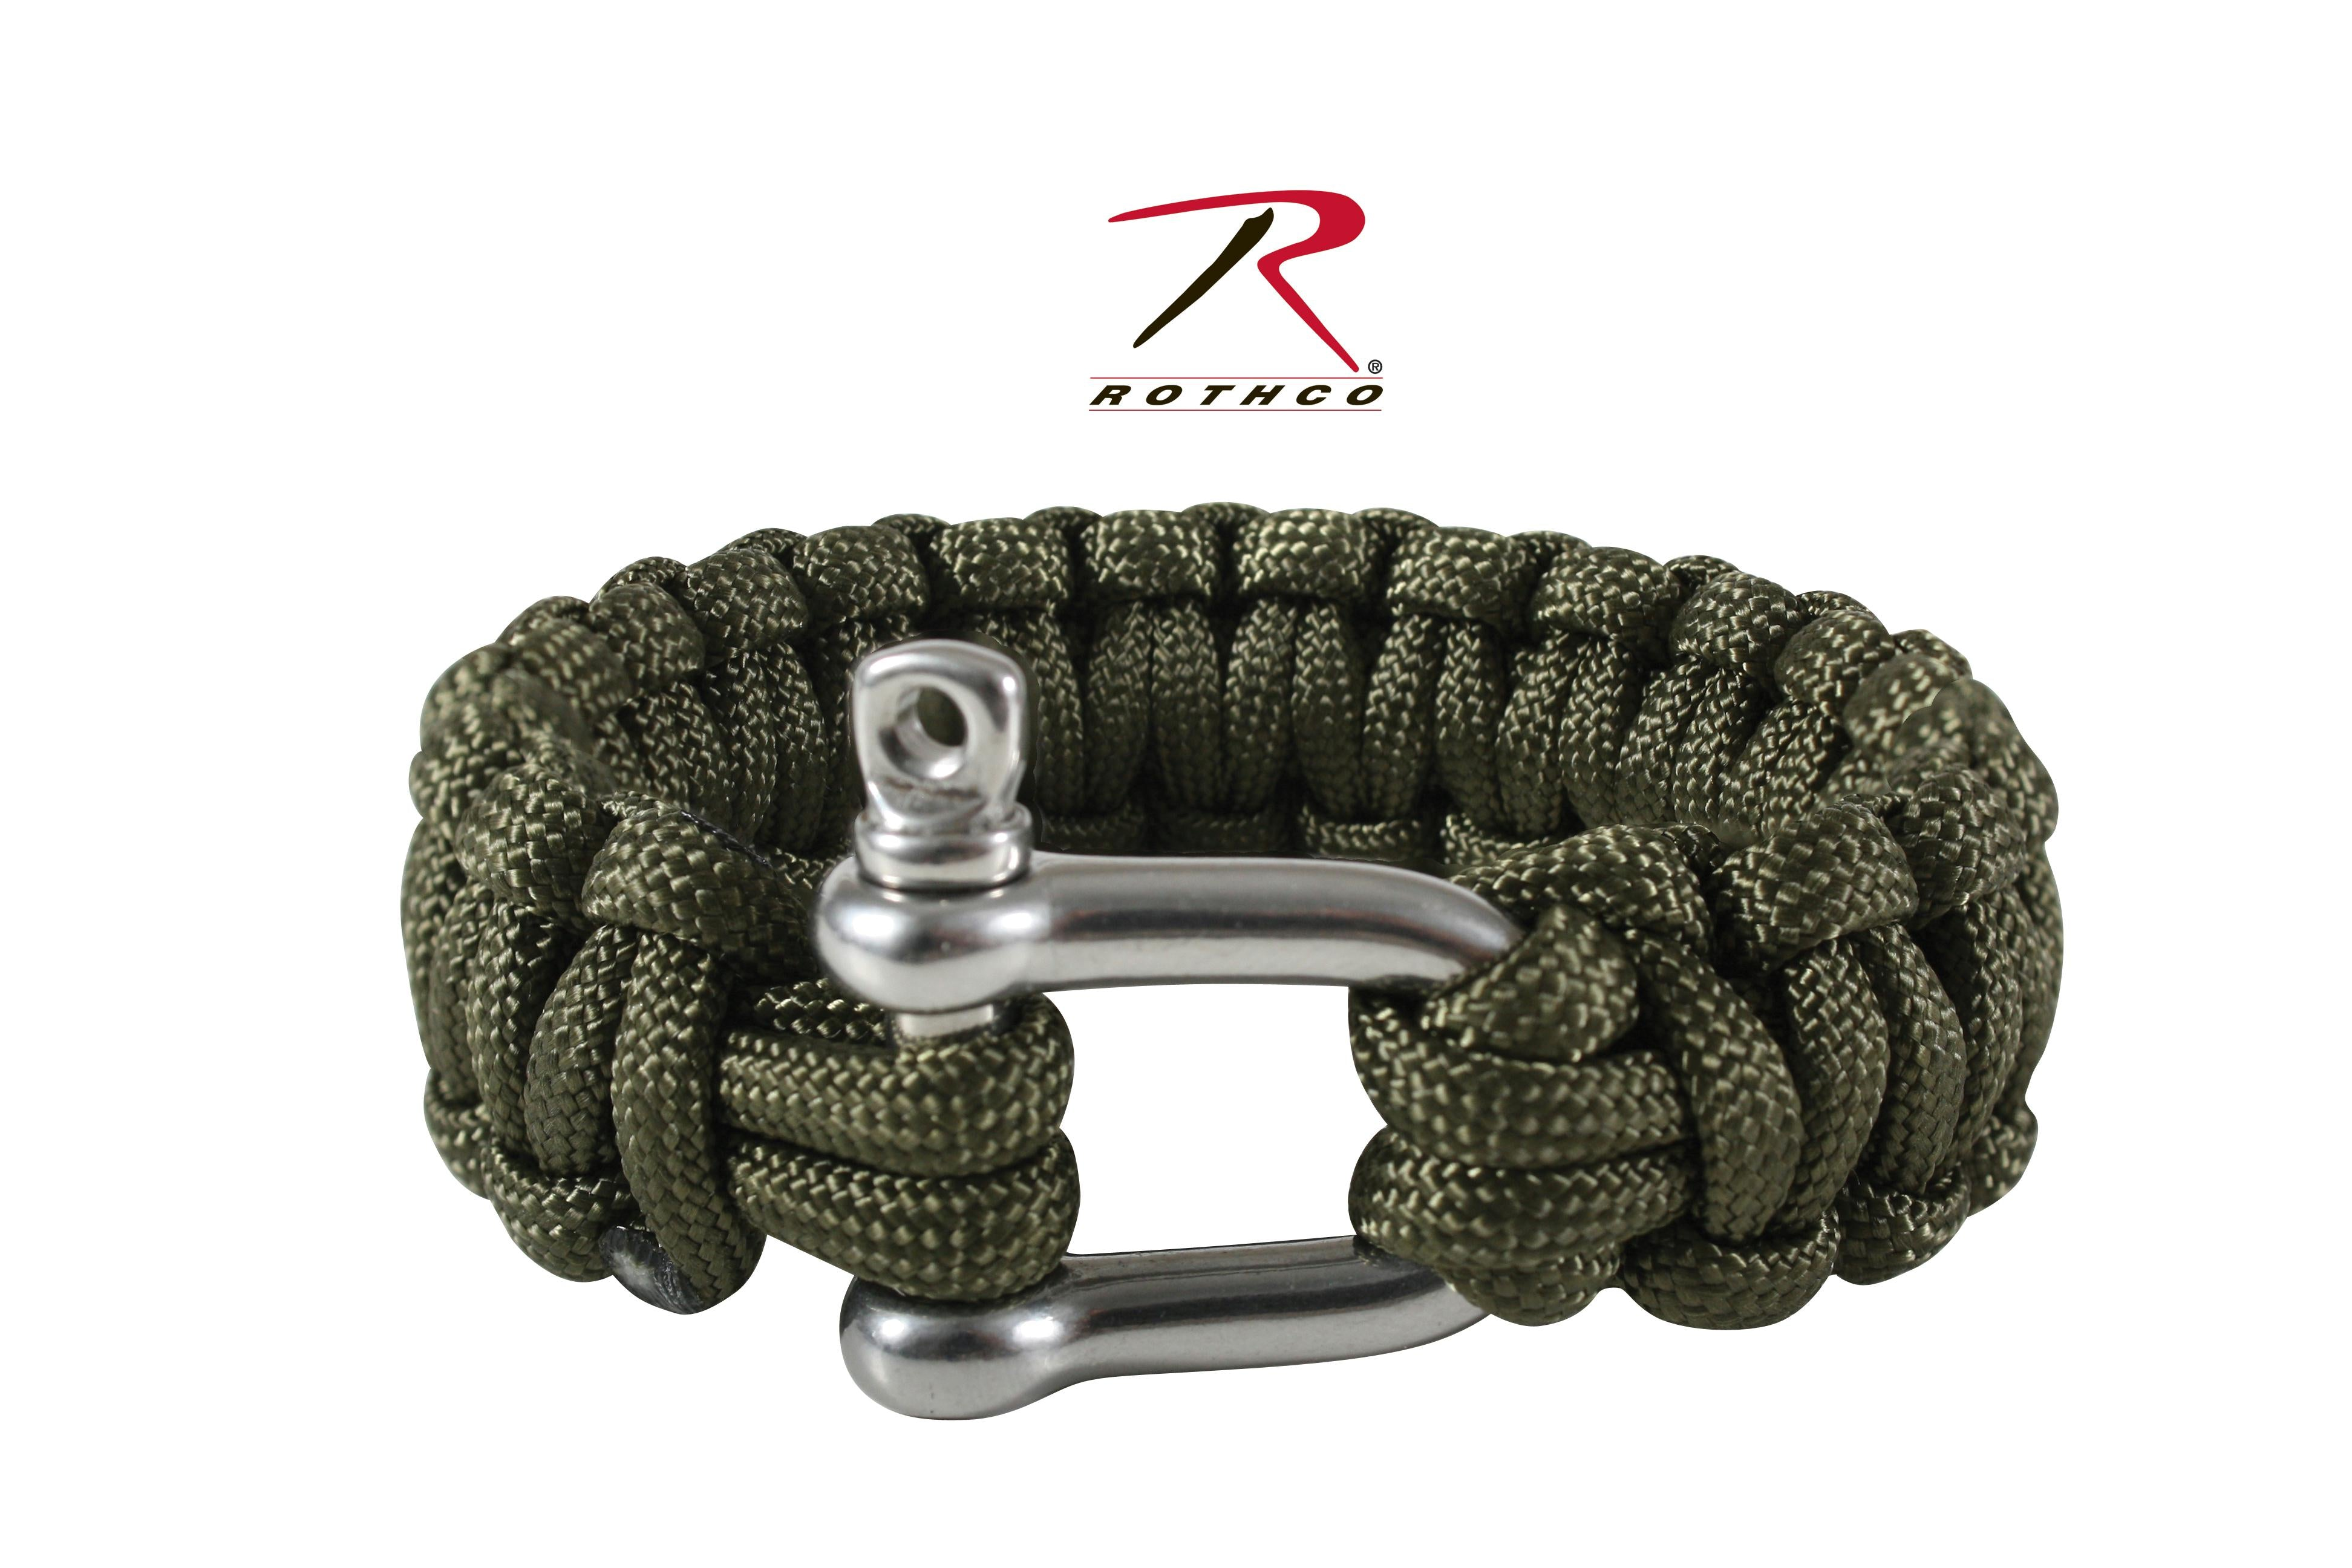 Rothco Paracord Bracelet With D-Shackle - Olive Drab / 8 Inches